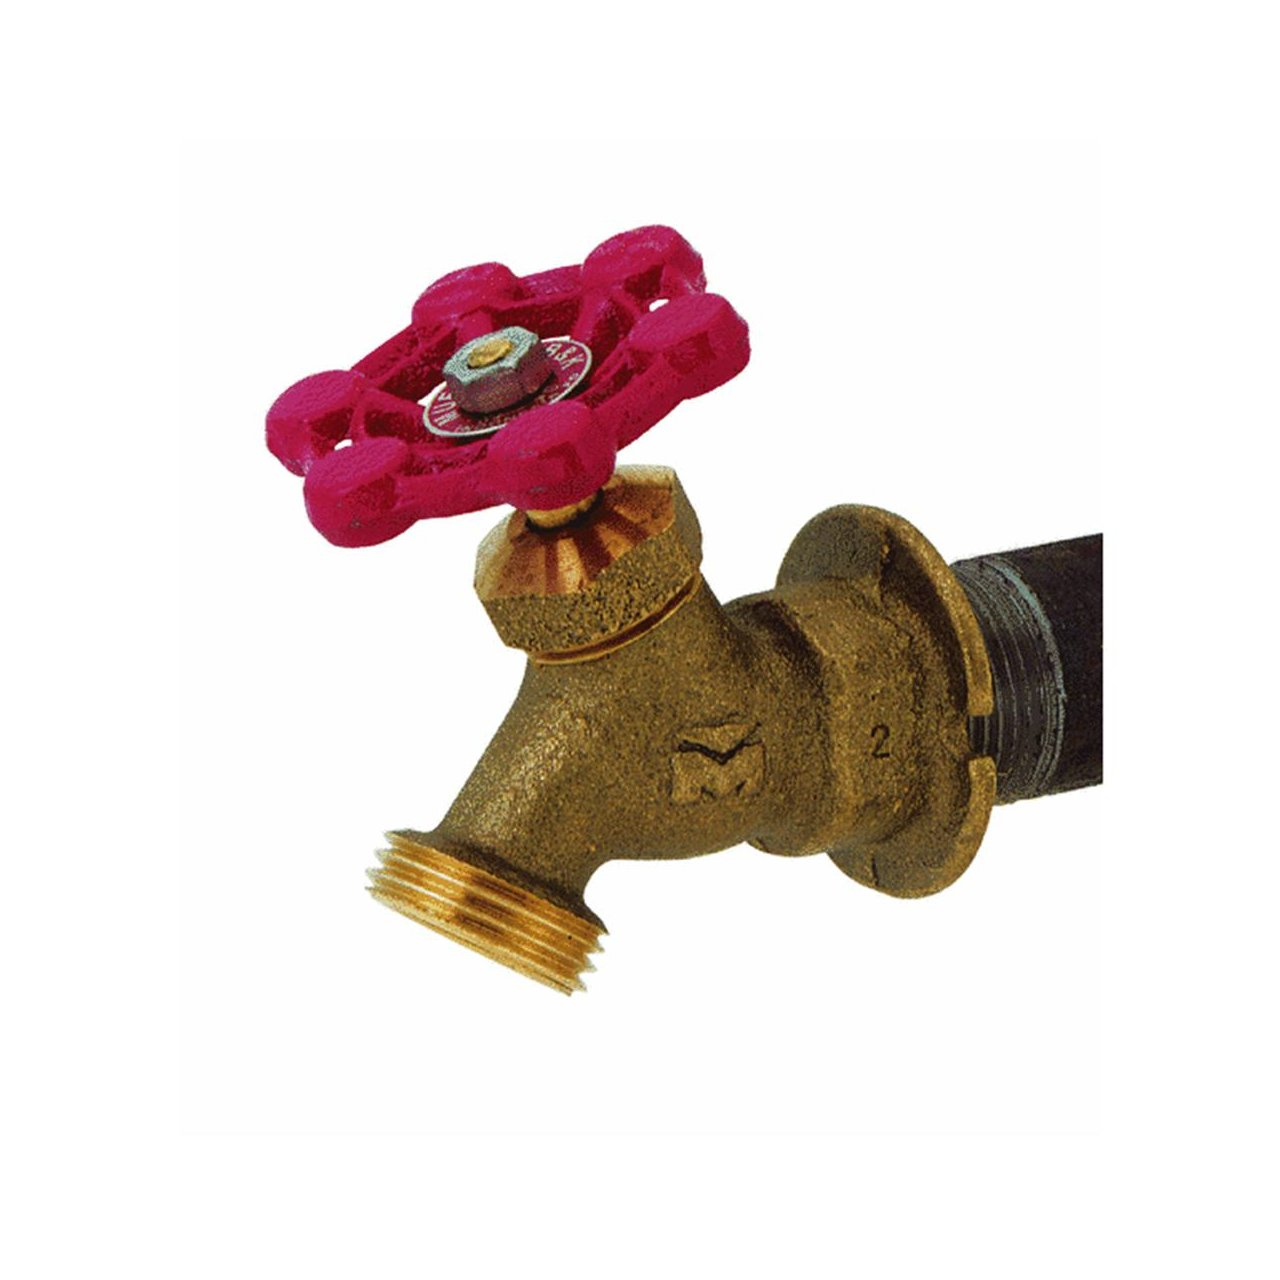 plumbing fix a ymcqj leaking questions i how image faucet broken description enter outdoor faucets can here threads with